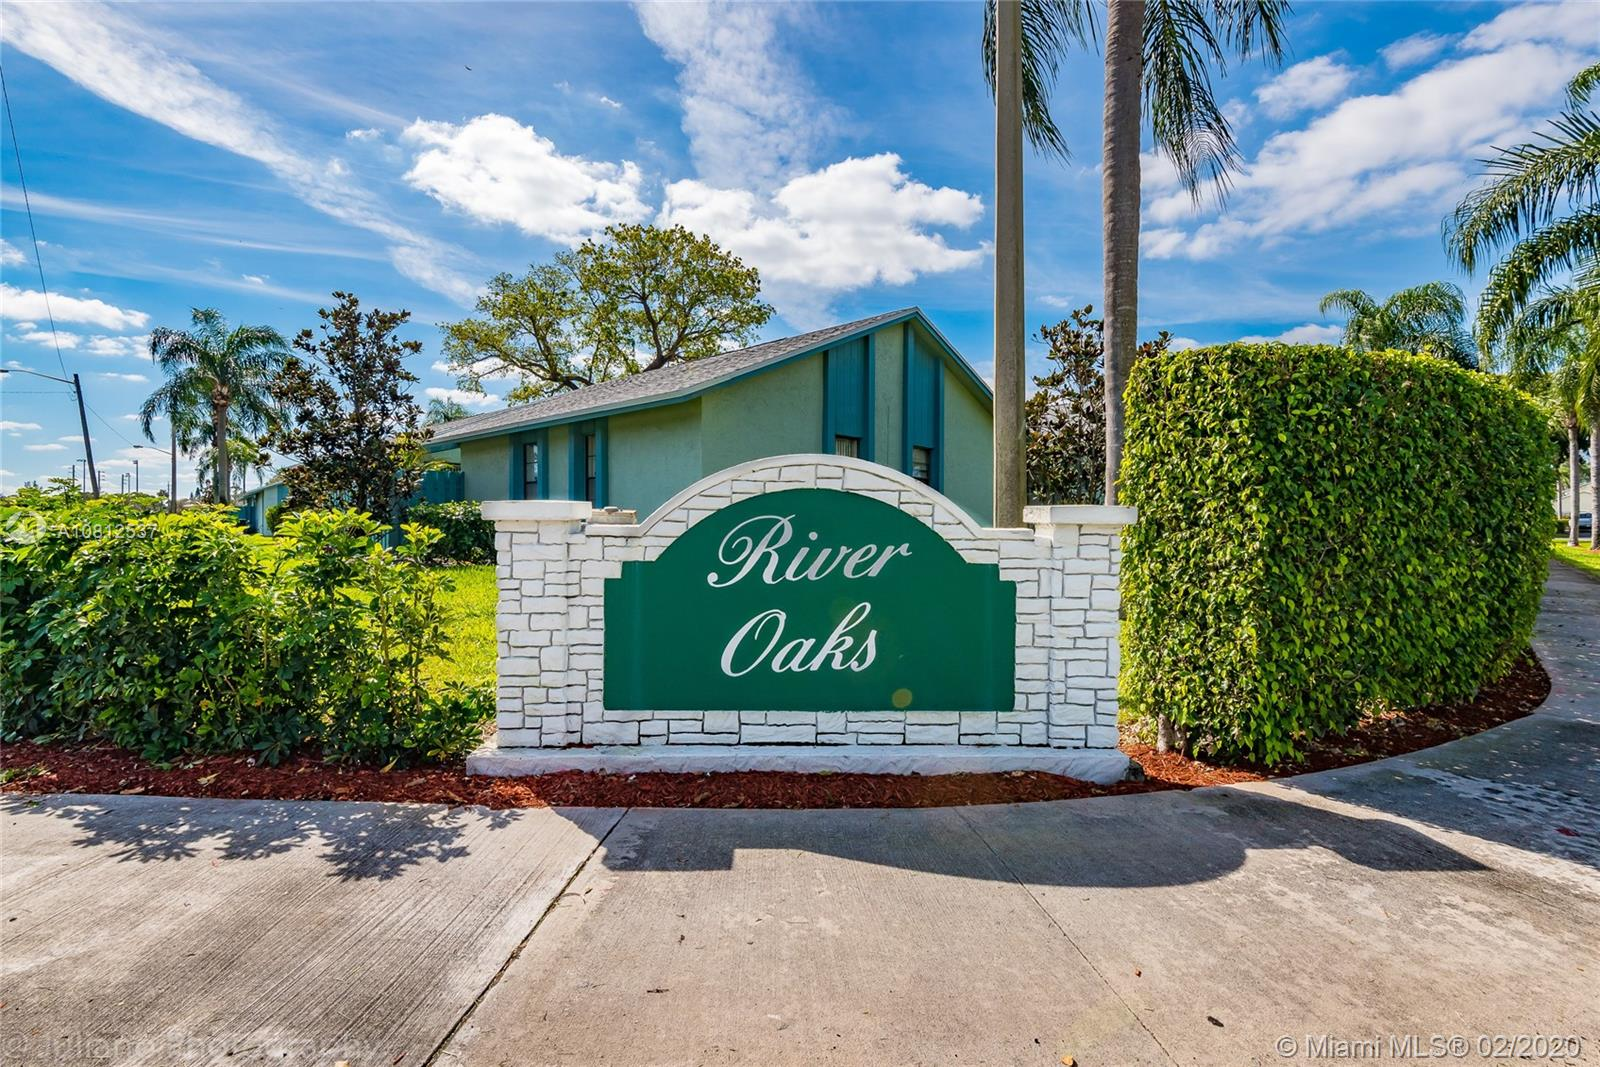 23320 SW 58th Ave #A, Boca Raton, FL 33428 - Boca Raton, FL real estate listing